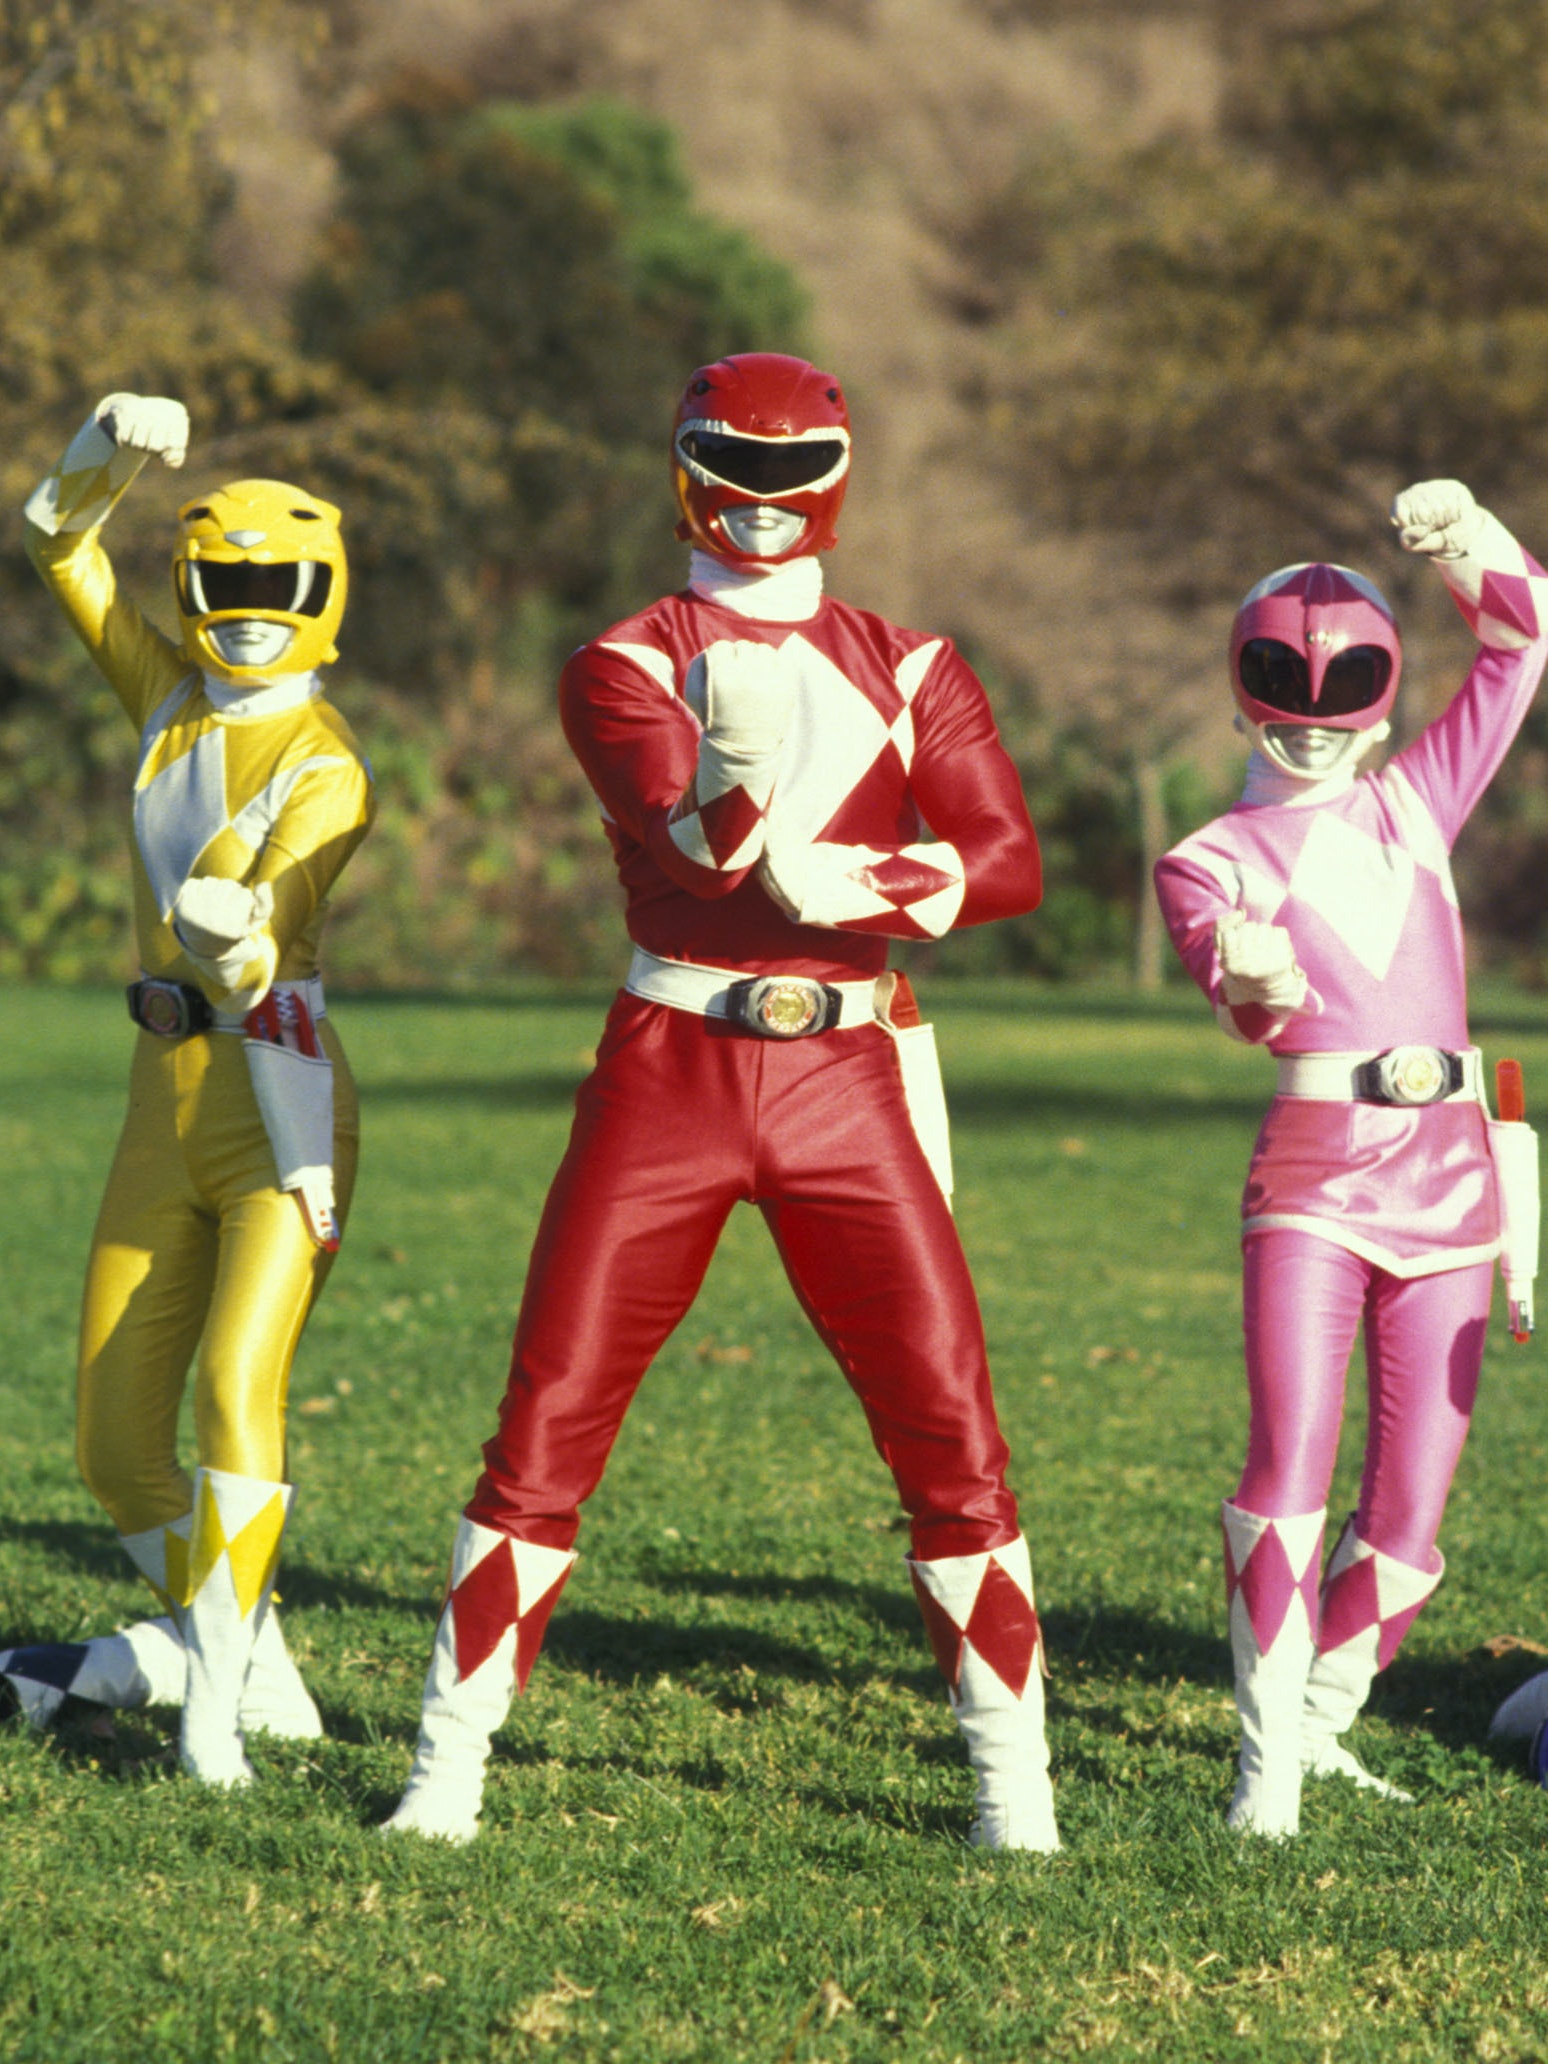 'Power Rangers' Movie Pushed to March 2017, So It Might Be ...